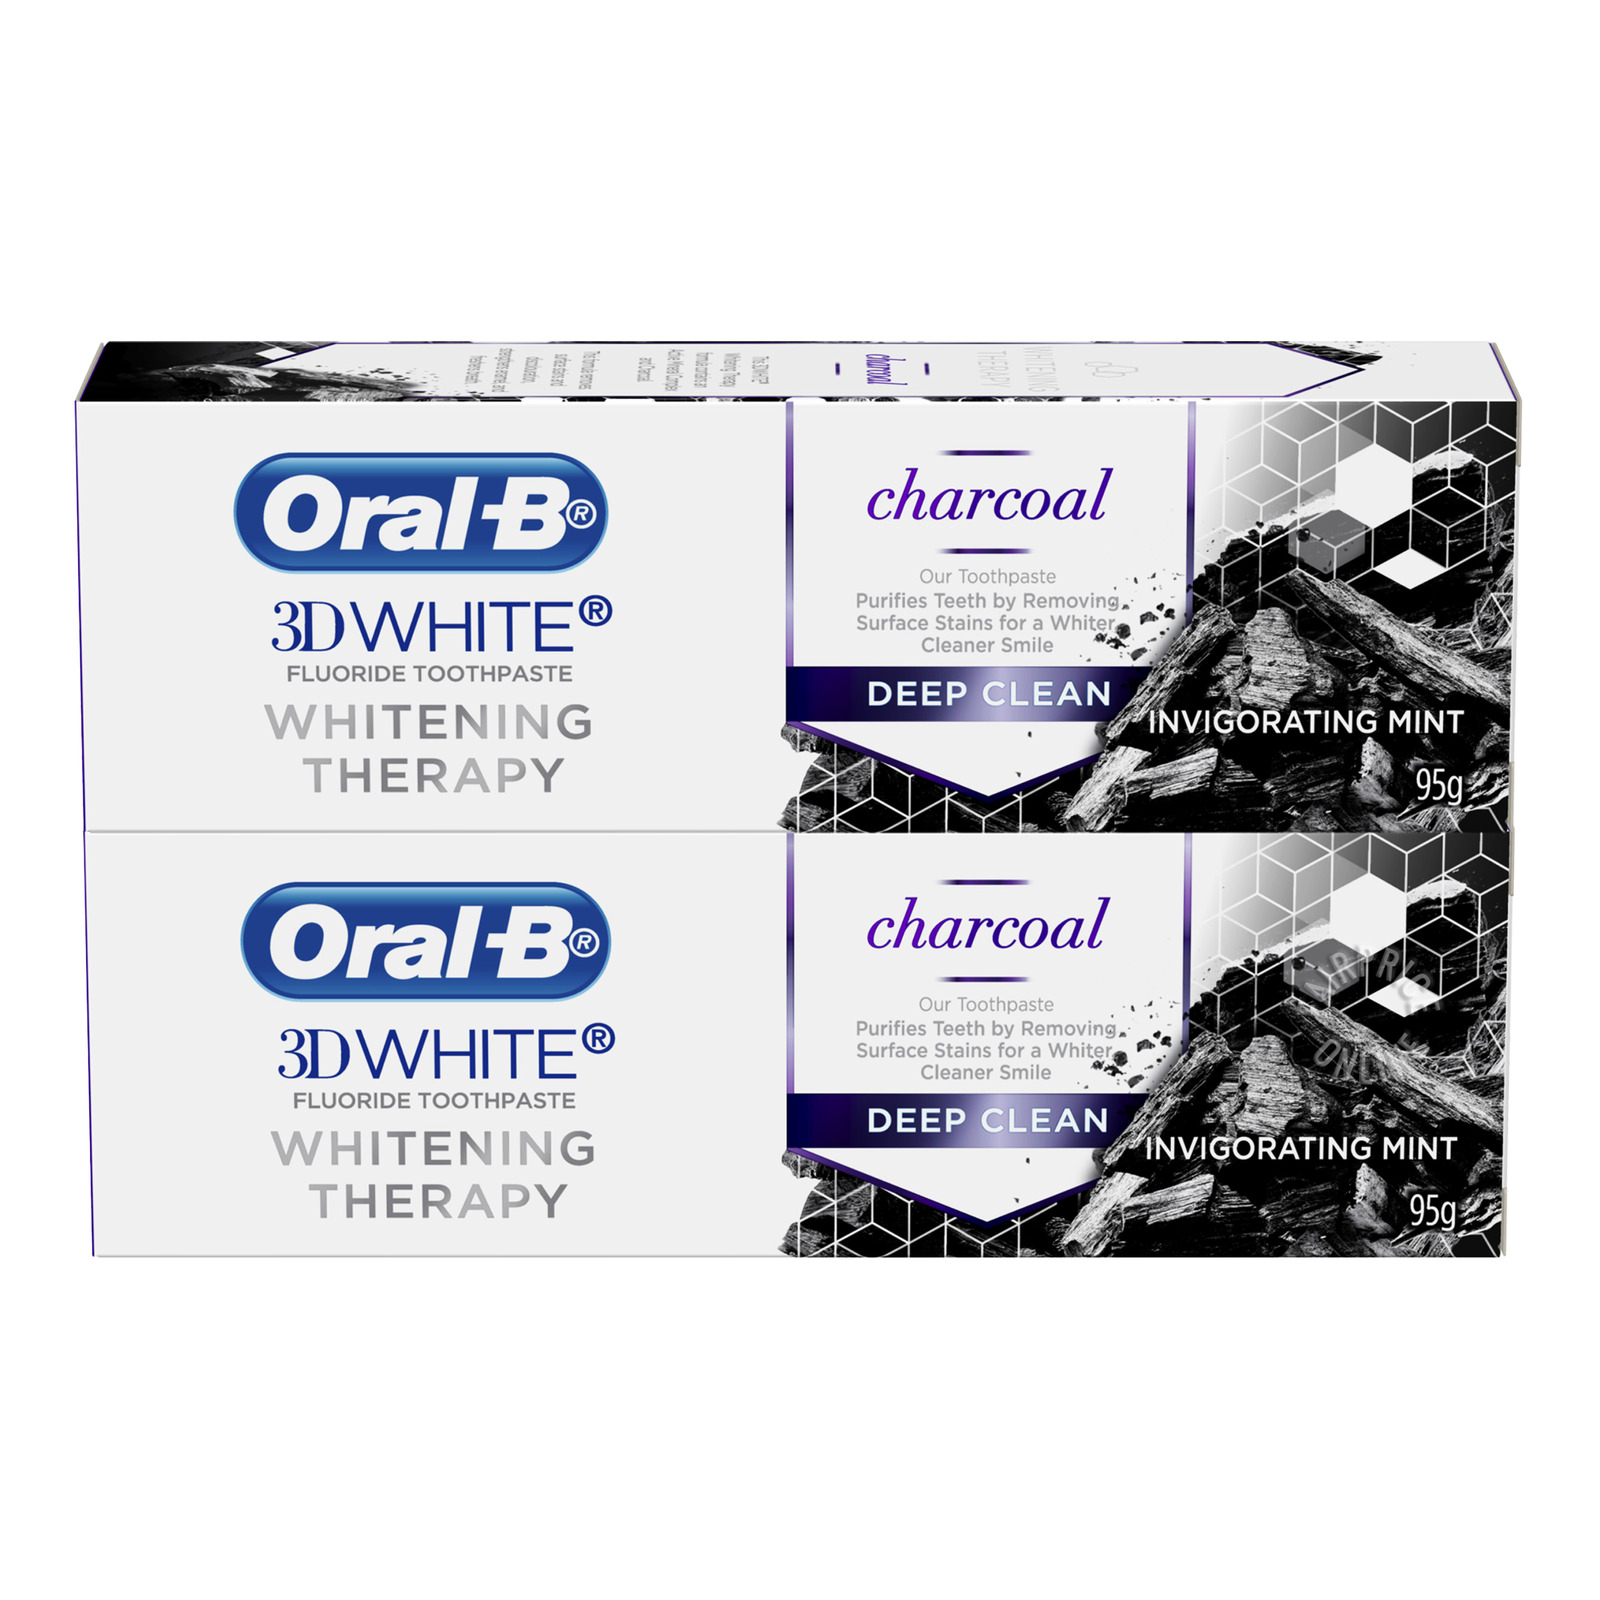 Oral B 3D White Toothpaste - Charcoal (Deep Clean)